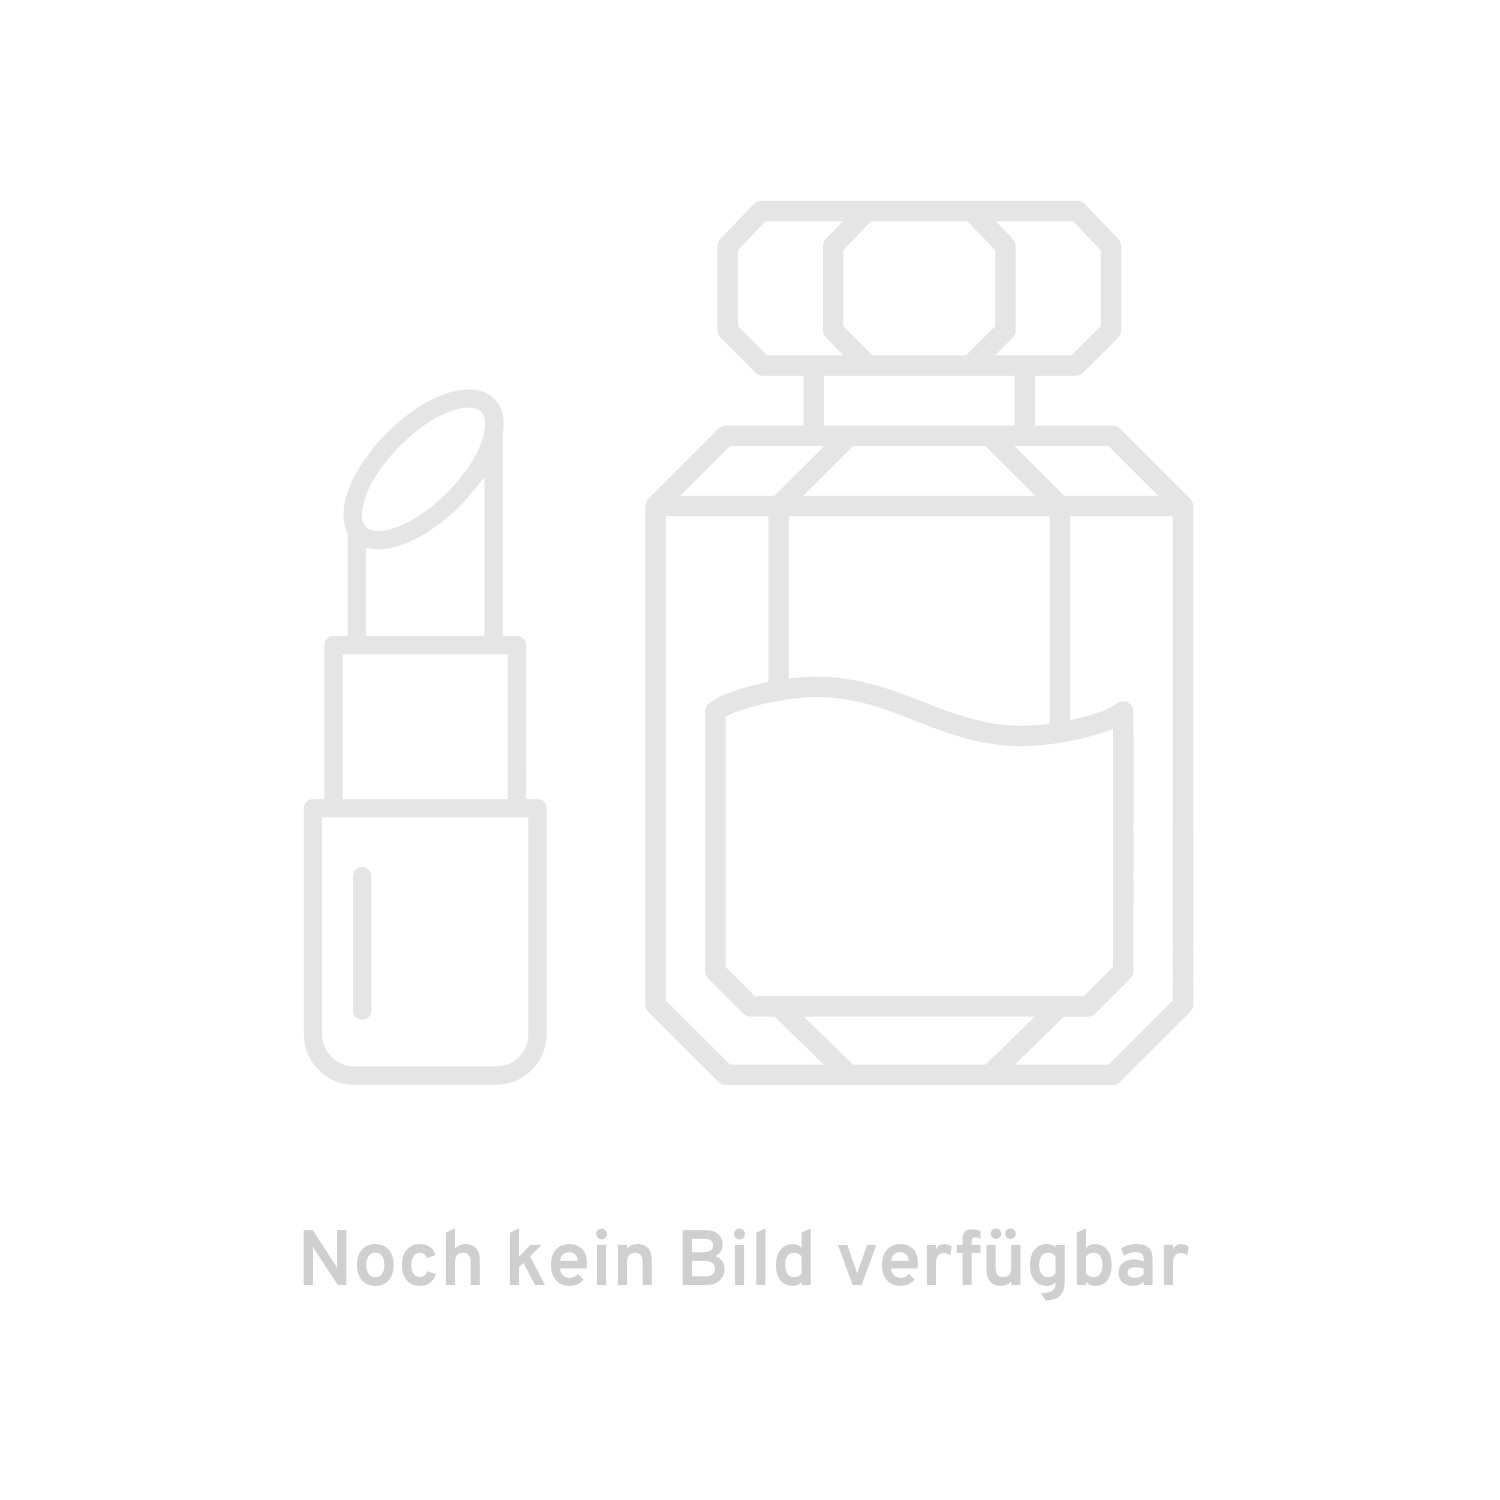 pink pepperpod fine liquid hand wash von molton brown bestellen bei ludwig beck beauty online. Black Bedroom Furniture Sets. Home Design Ideas